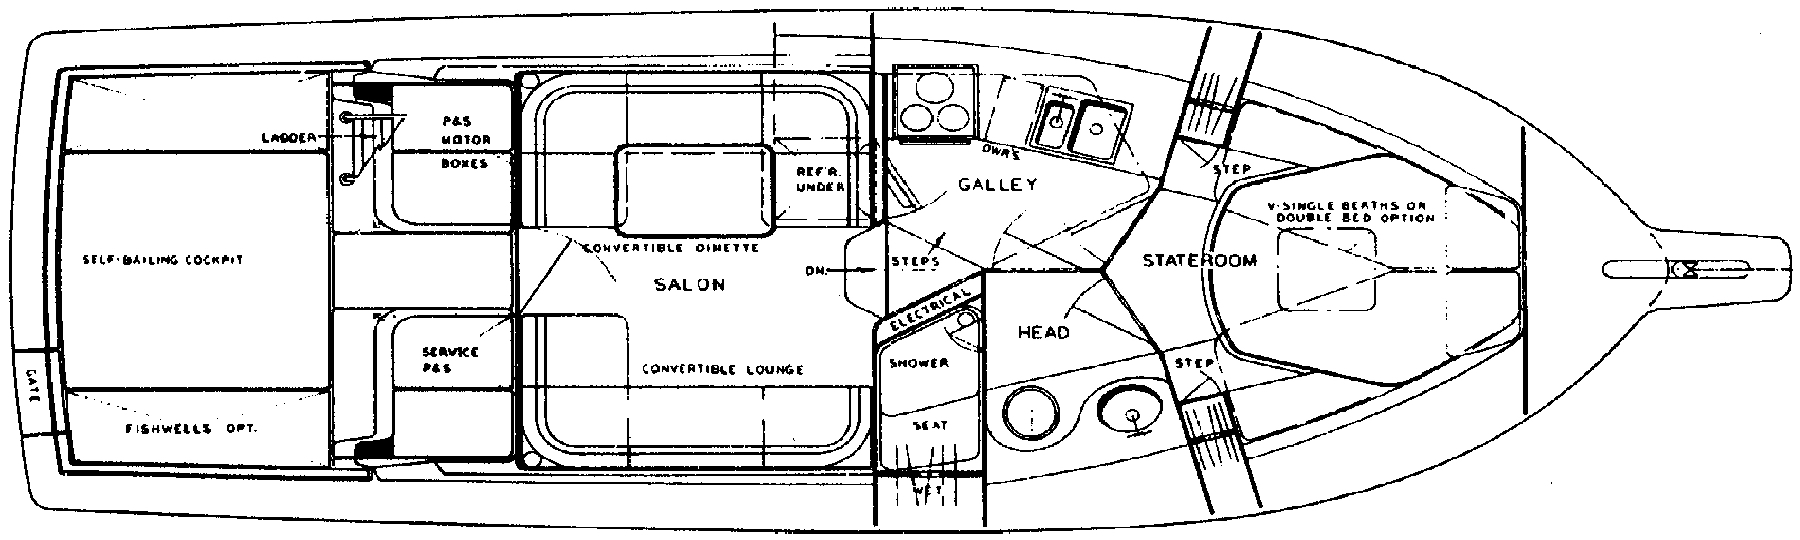 33 Convertible; 33-34 SFX Floor Plan 2